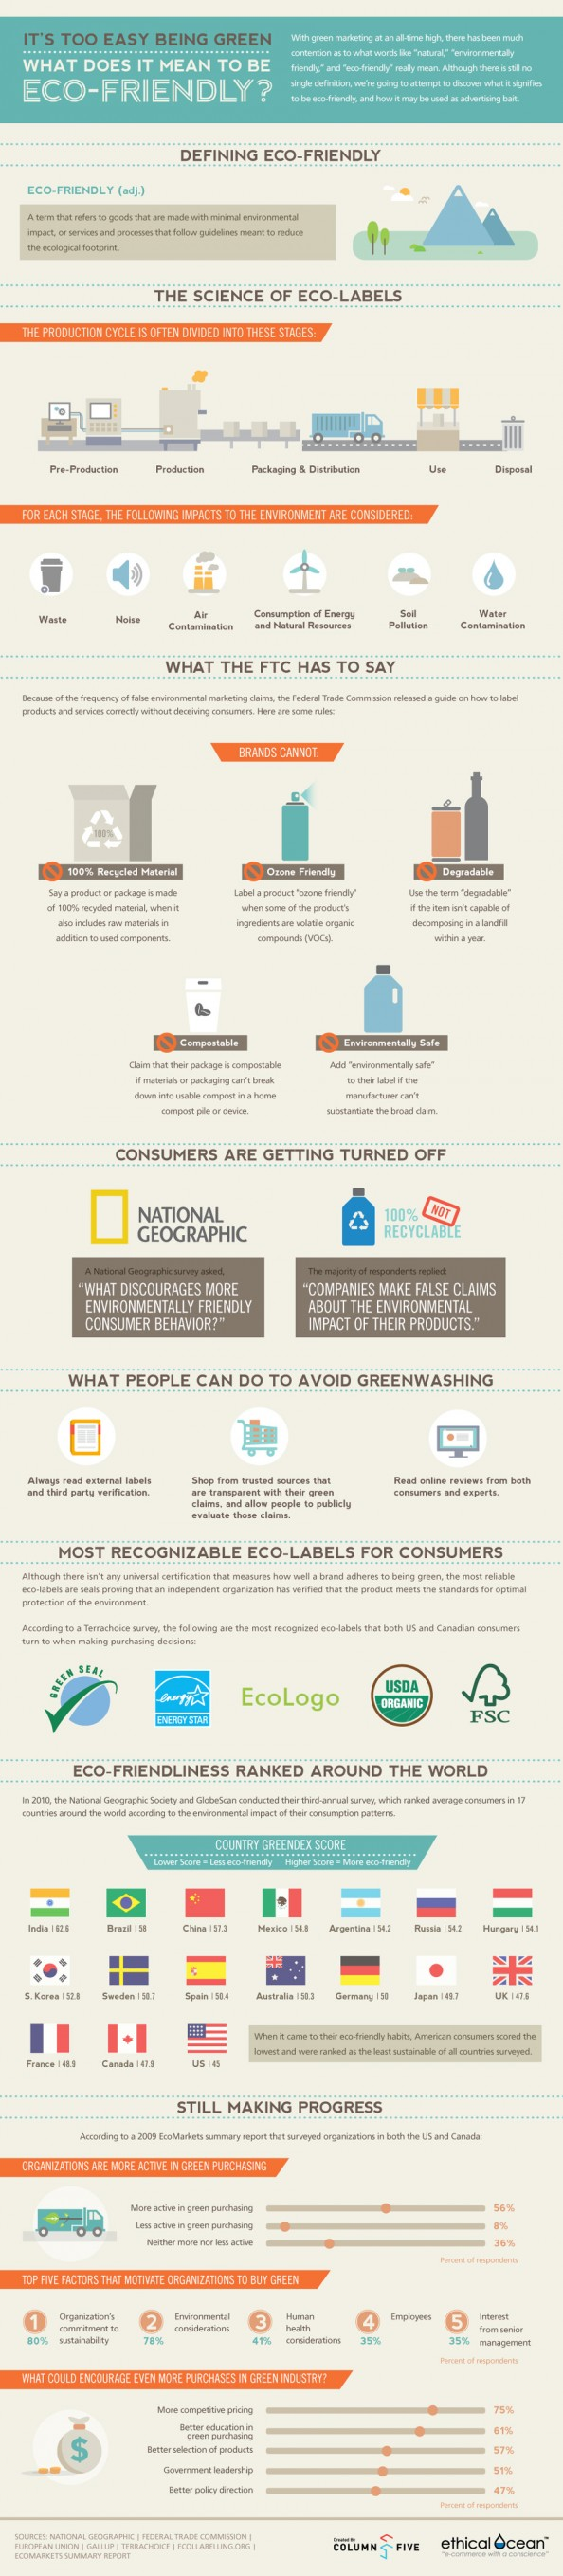 It's Too Easy Being Green - What Does It Mean To Be Eco-Friendly [Infographic] | Visual.ly